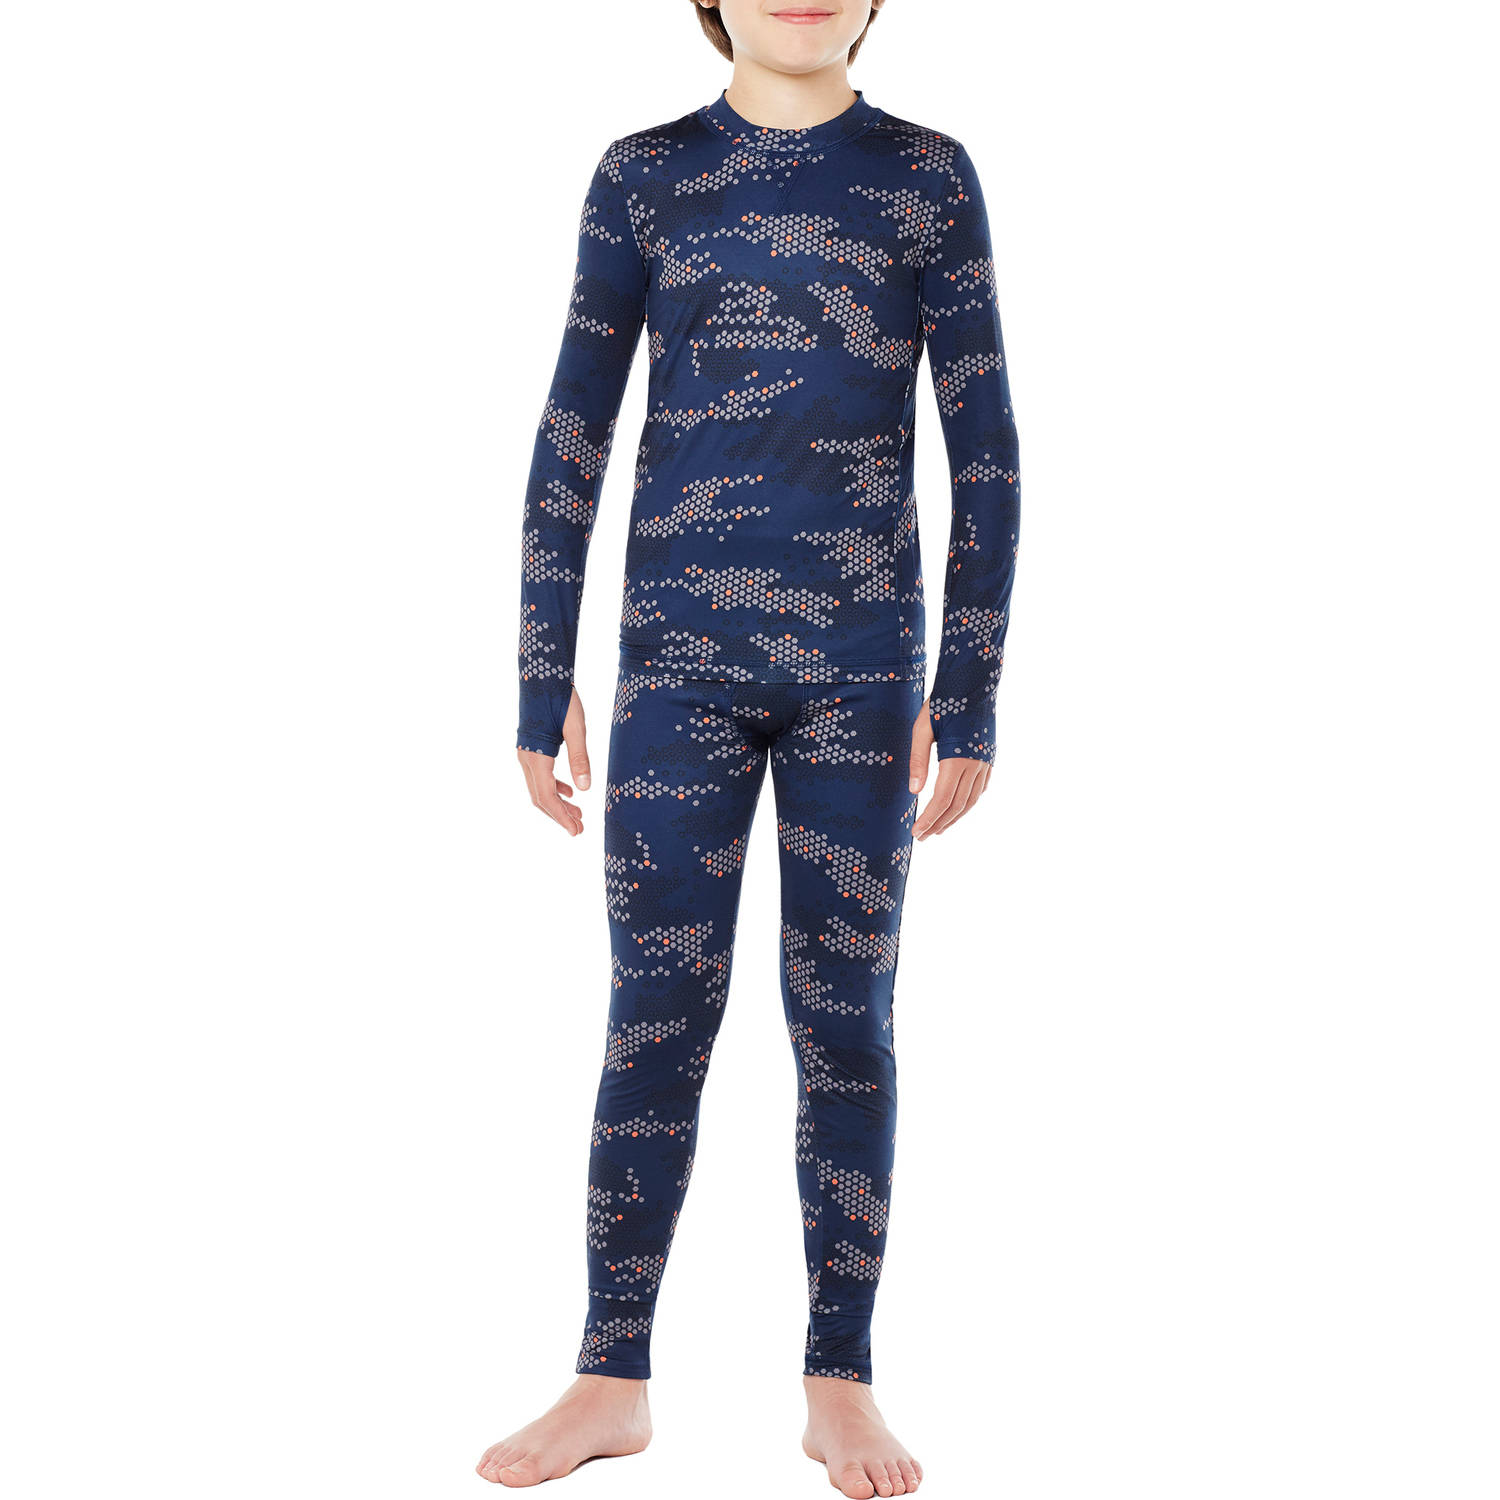 Climateright By Cuddl Duds Boys Poly Spandex Thermal Set with Inseam Thumbholes for Easy Layering